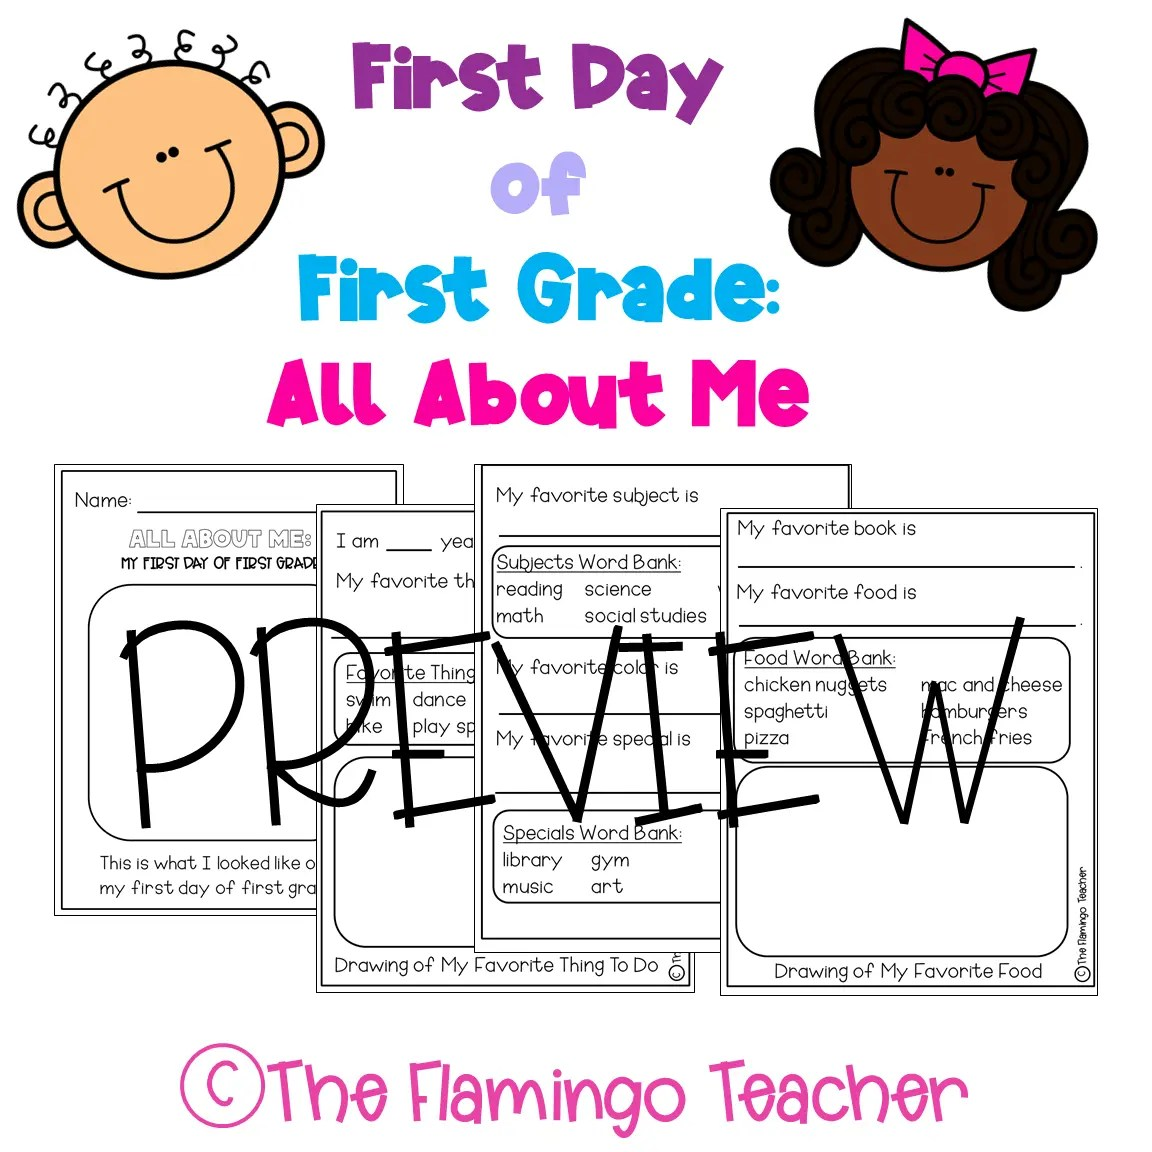 hight resolution of First Day of First Grade All About Me Printables - The Flamingo Teacher